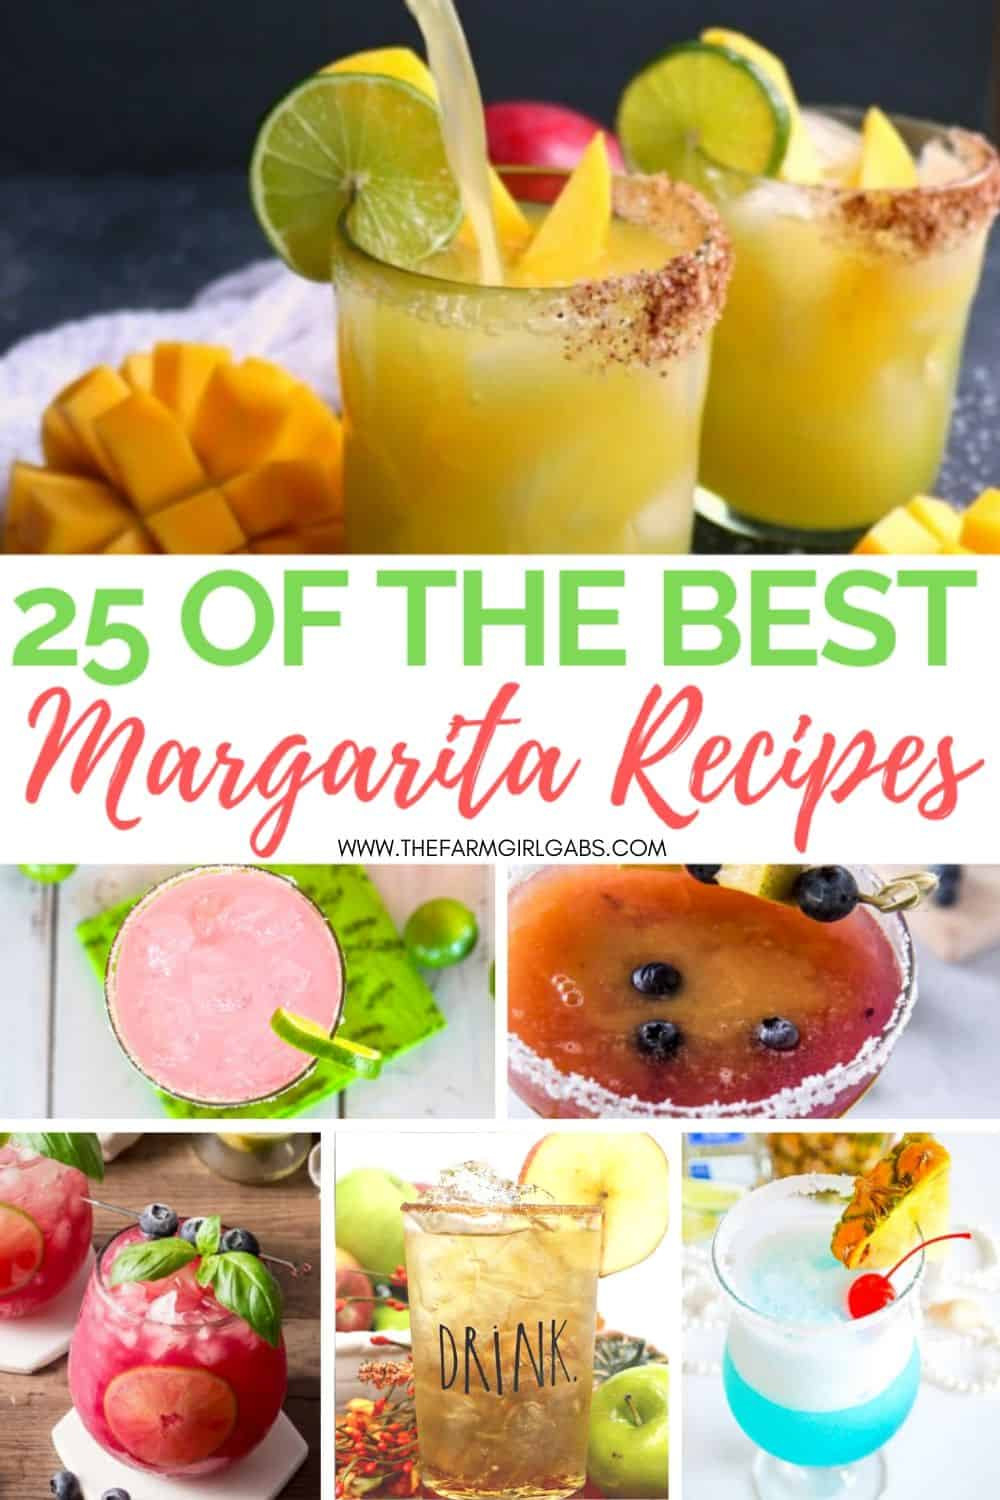 Toast National Margarita day with one of these Best Margarita Recipes. These refreshing margarita cocktail recipes are great to serve all year long.